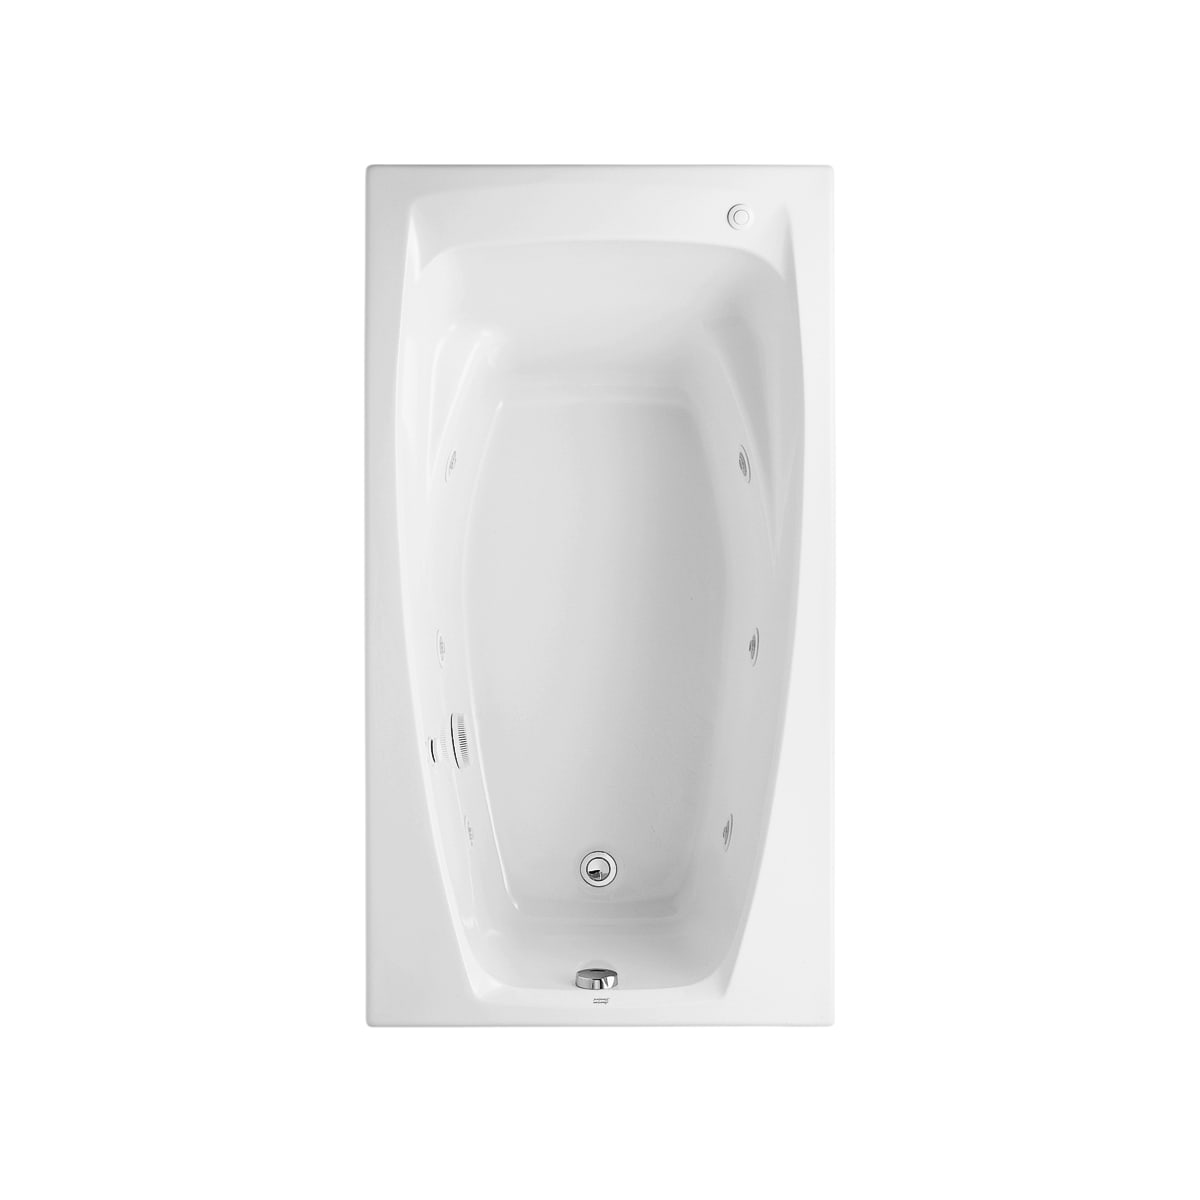 American Standard 2675018020 White Colony 60 Acrylic Whirlpool Urinal Wiring Diagram Bathtub With Reversible Drain And Acumassage Jets